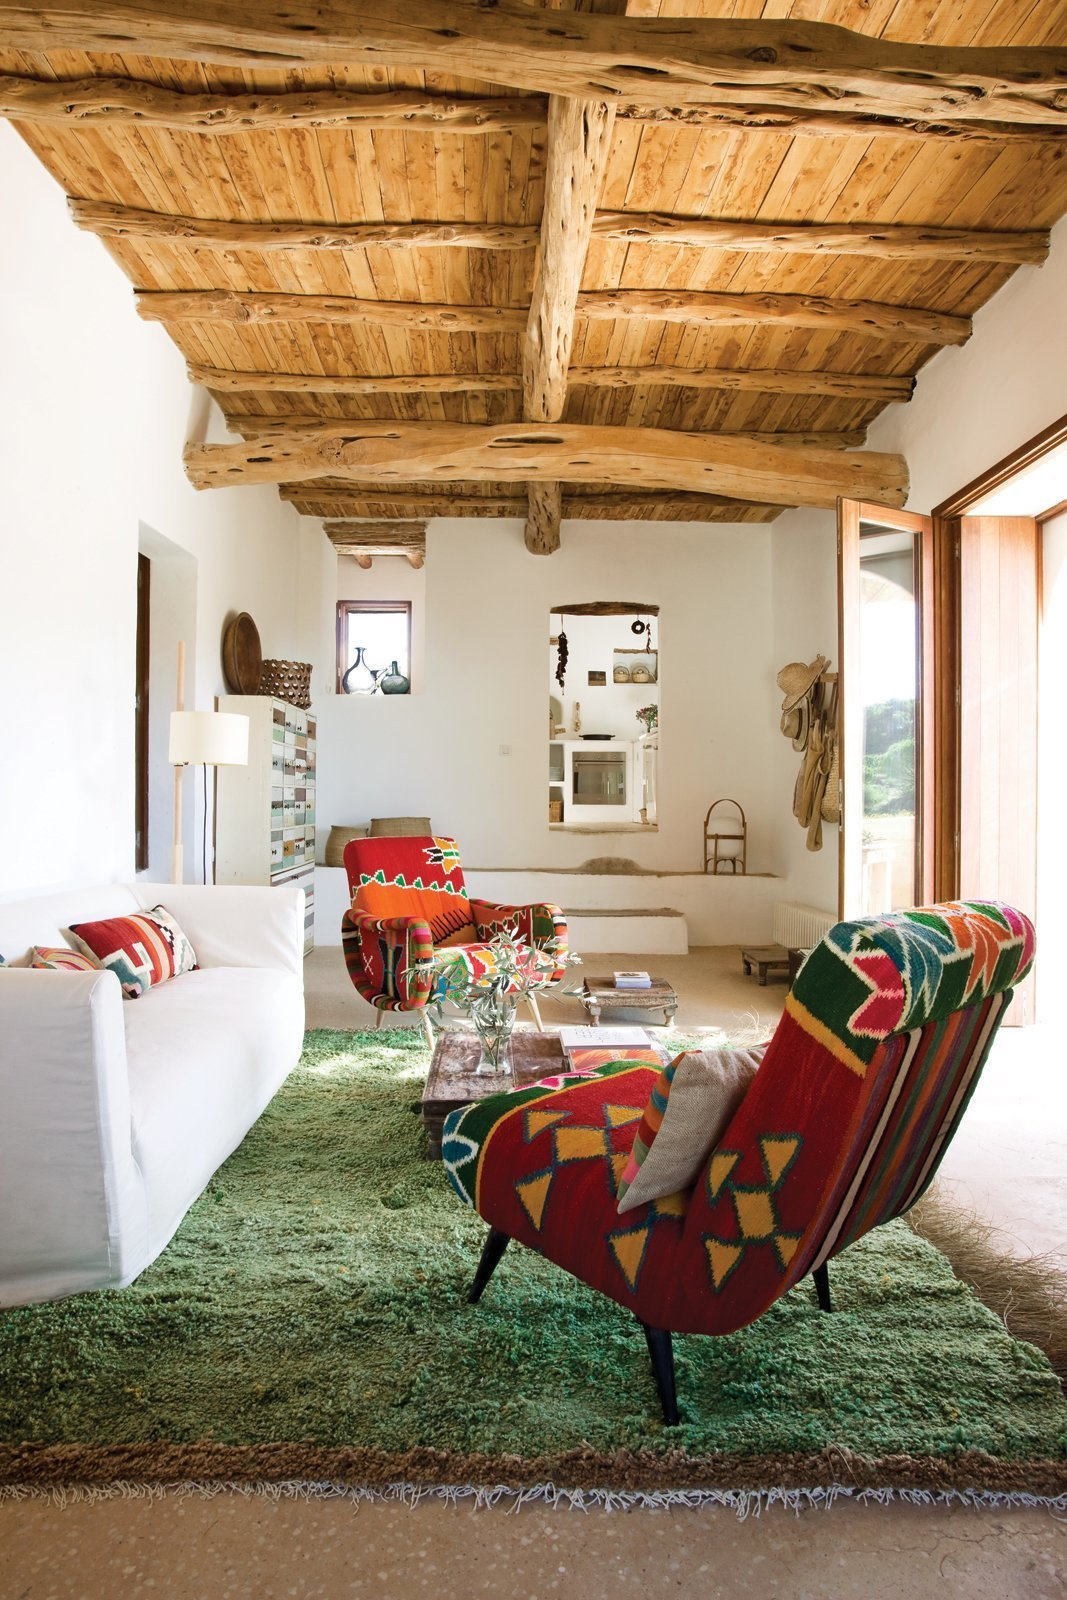 Living, Rug, Chair, Sofa, Coffee Tables, Floor, Lamps, and Storage Rug designer Nani Marquina and photographer Albert Font created their home in a peaceful corner of the Spanish island of Ibiza. In their living room is a pair of kilim-covered chairs by Philippe Xerri, a chest of drawers by Piet Hein Eek, and a handmade Tunisian rug that provides bursts of color amidst the overall color scheme of white, ecru, and cream.  Best Living Photos from 12 Mediterranean Homes That Are the Antidote to Mid-Winter Blues